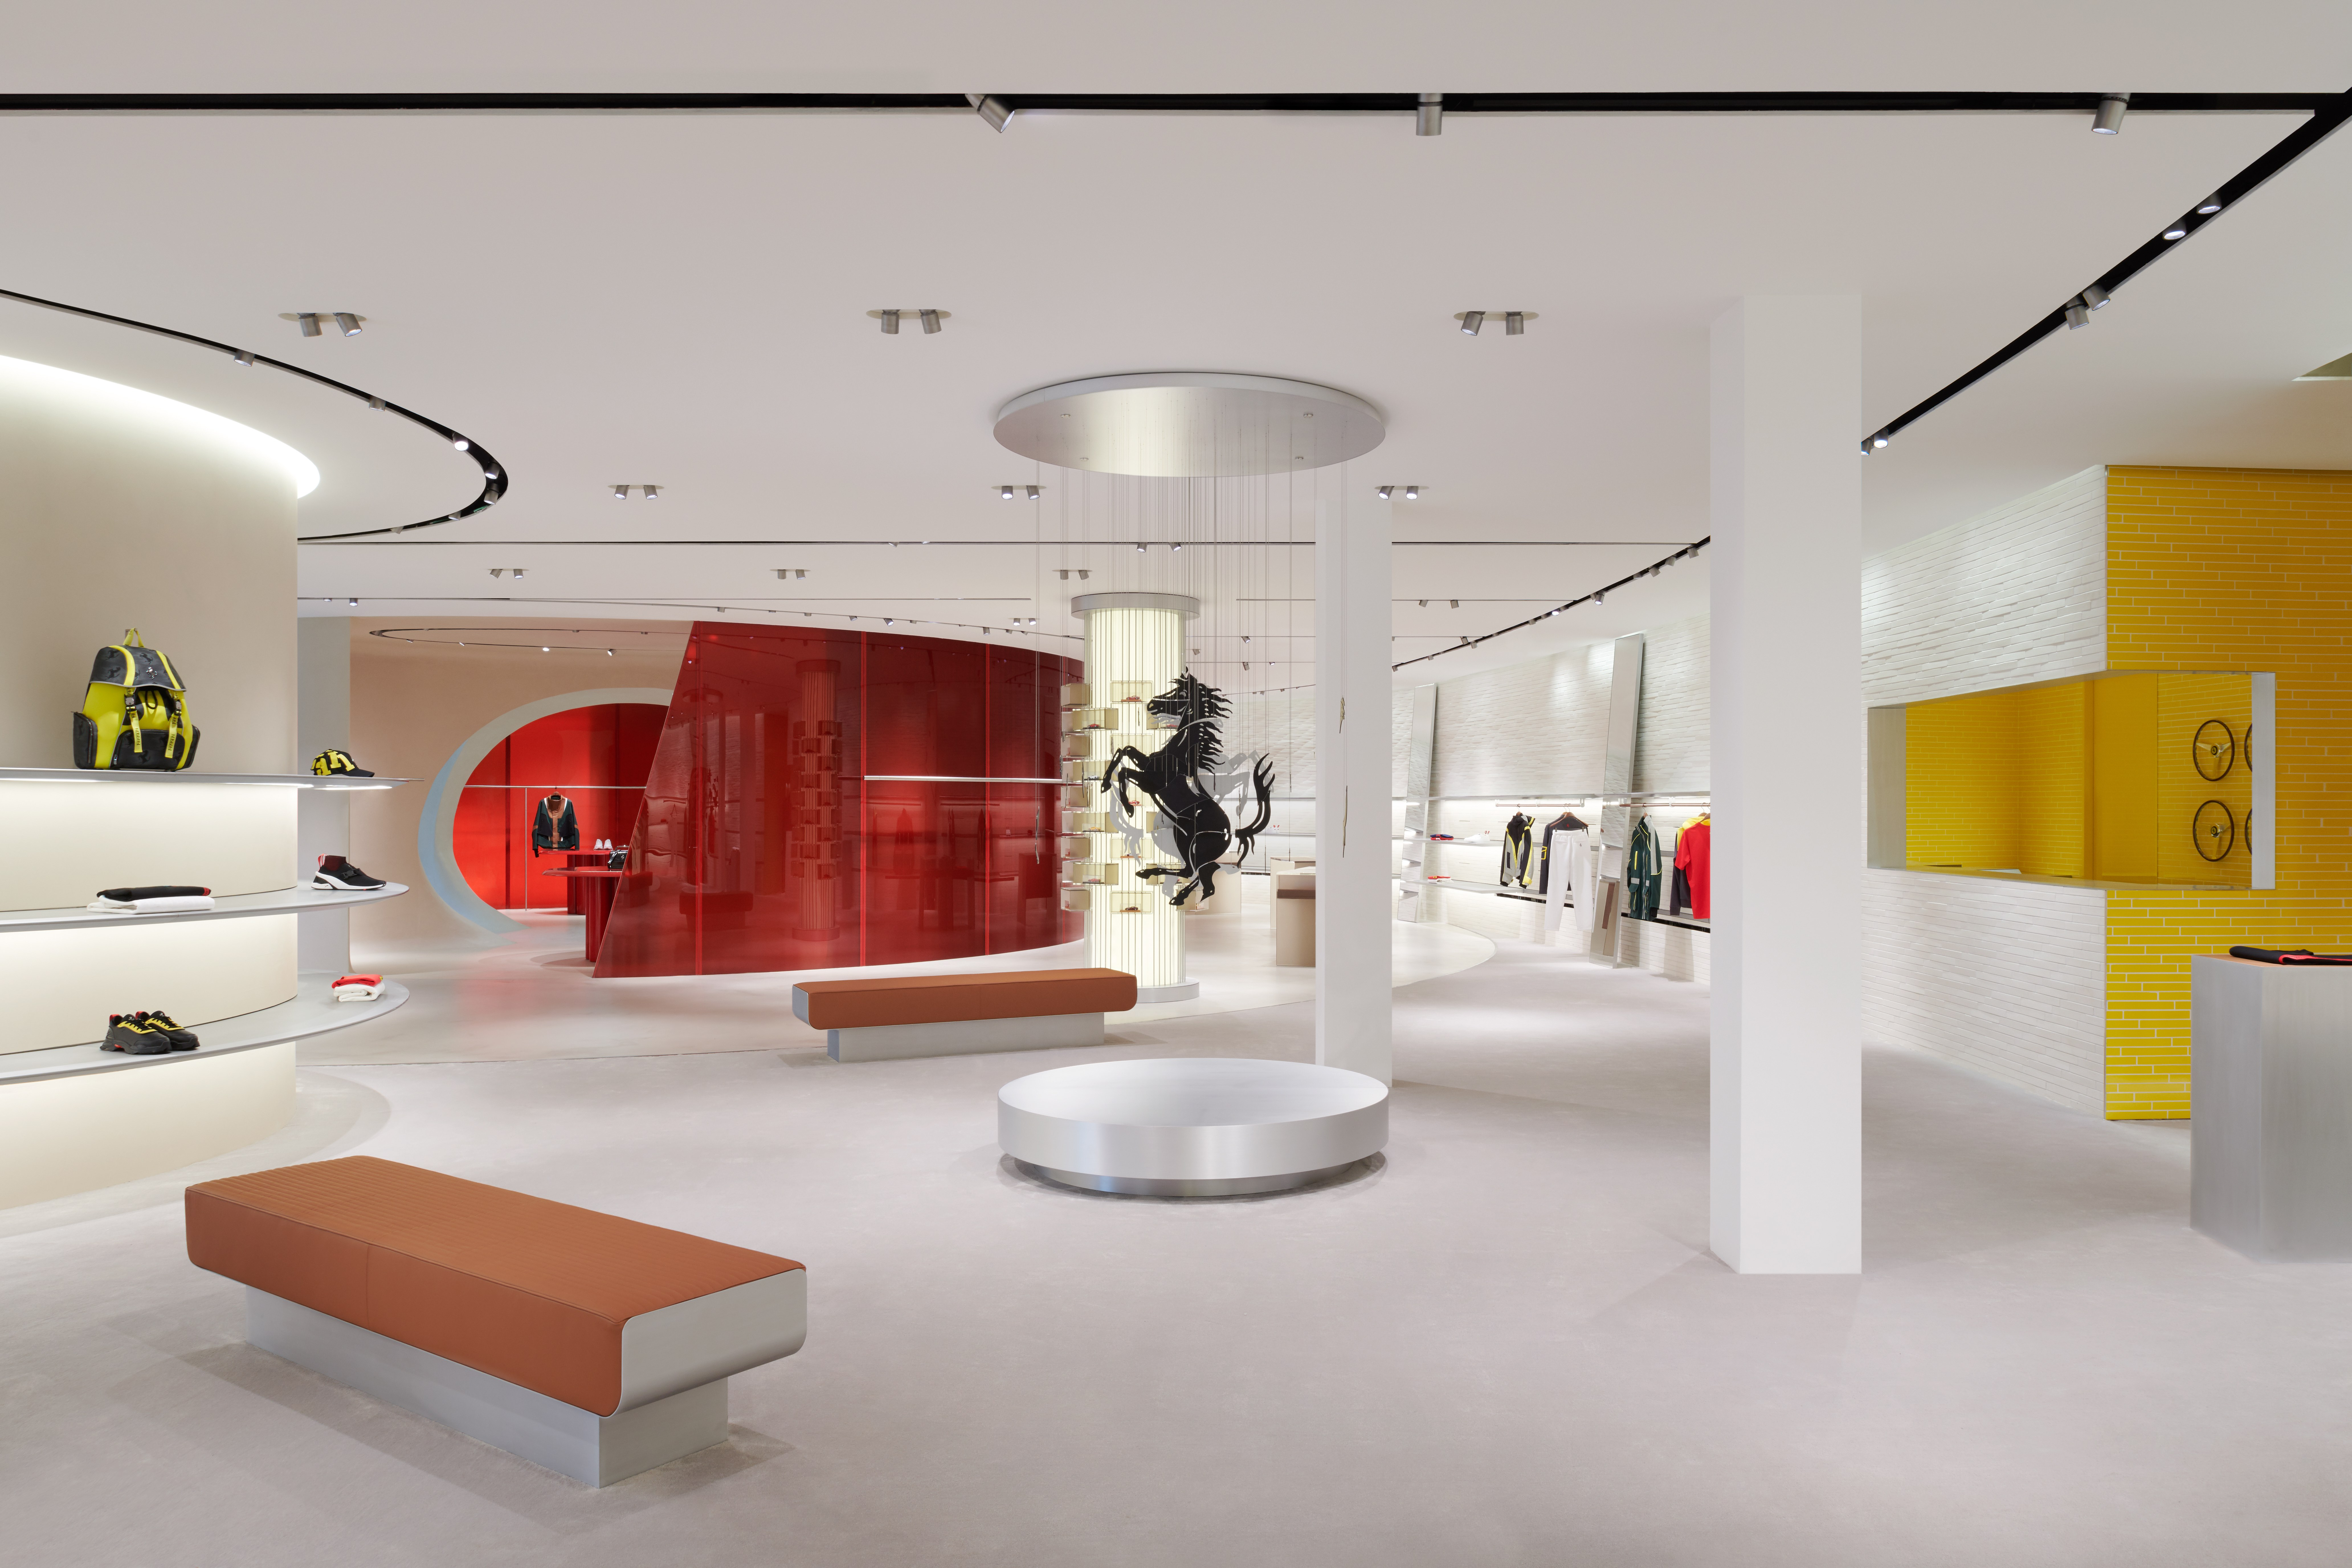 A first look at the new Ferrari store concept in Maranello, designed by Sybarite.